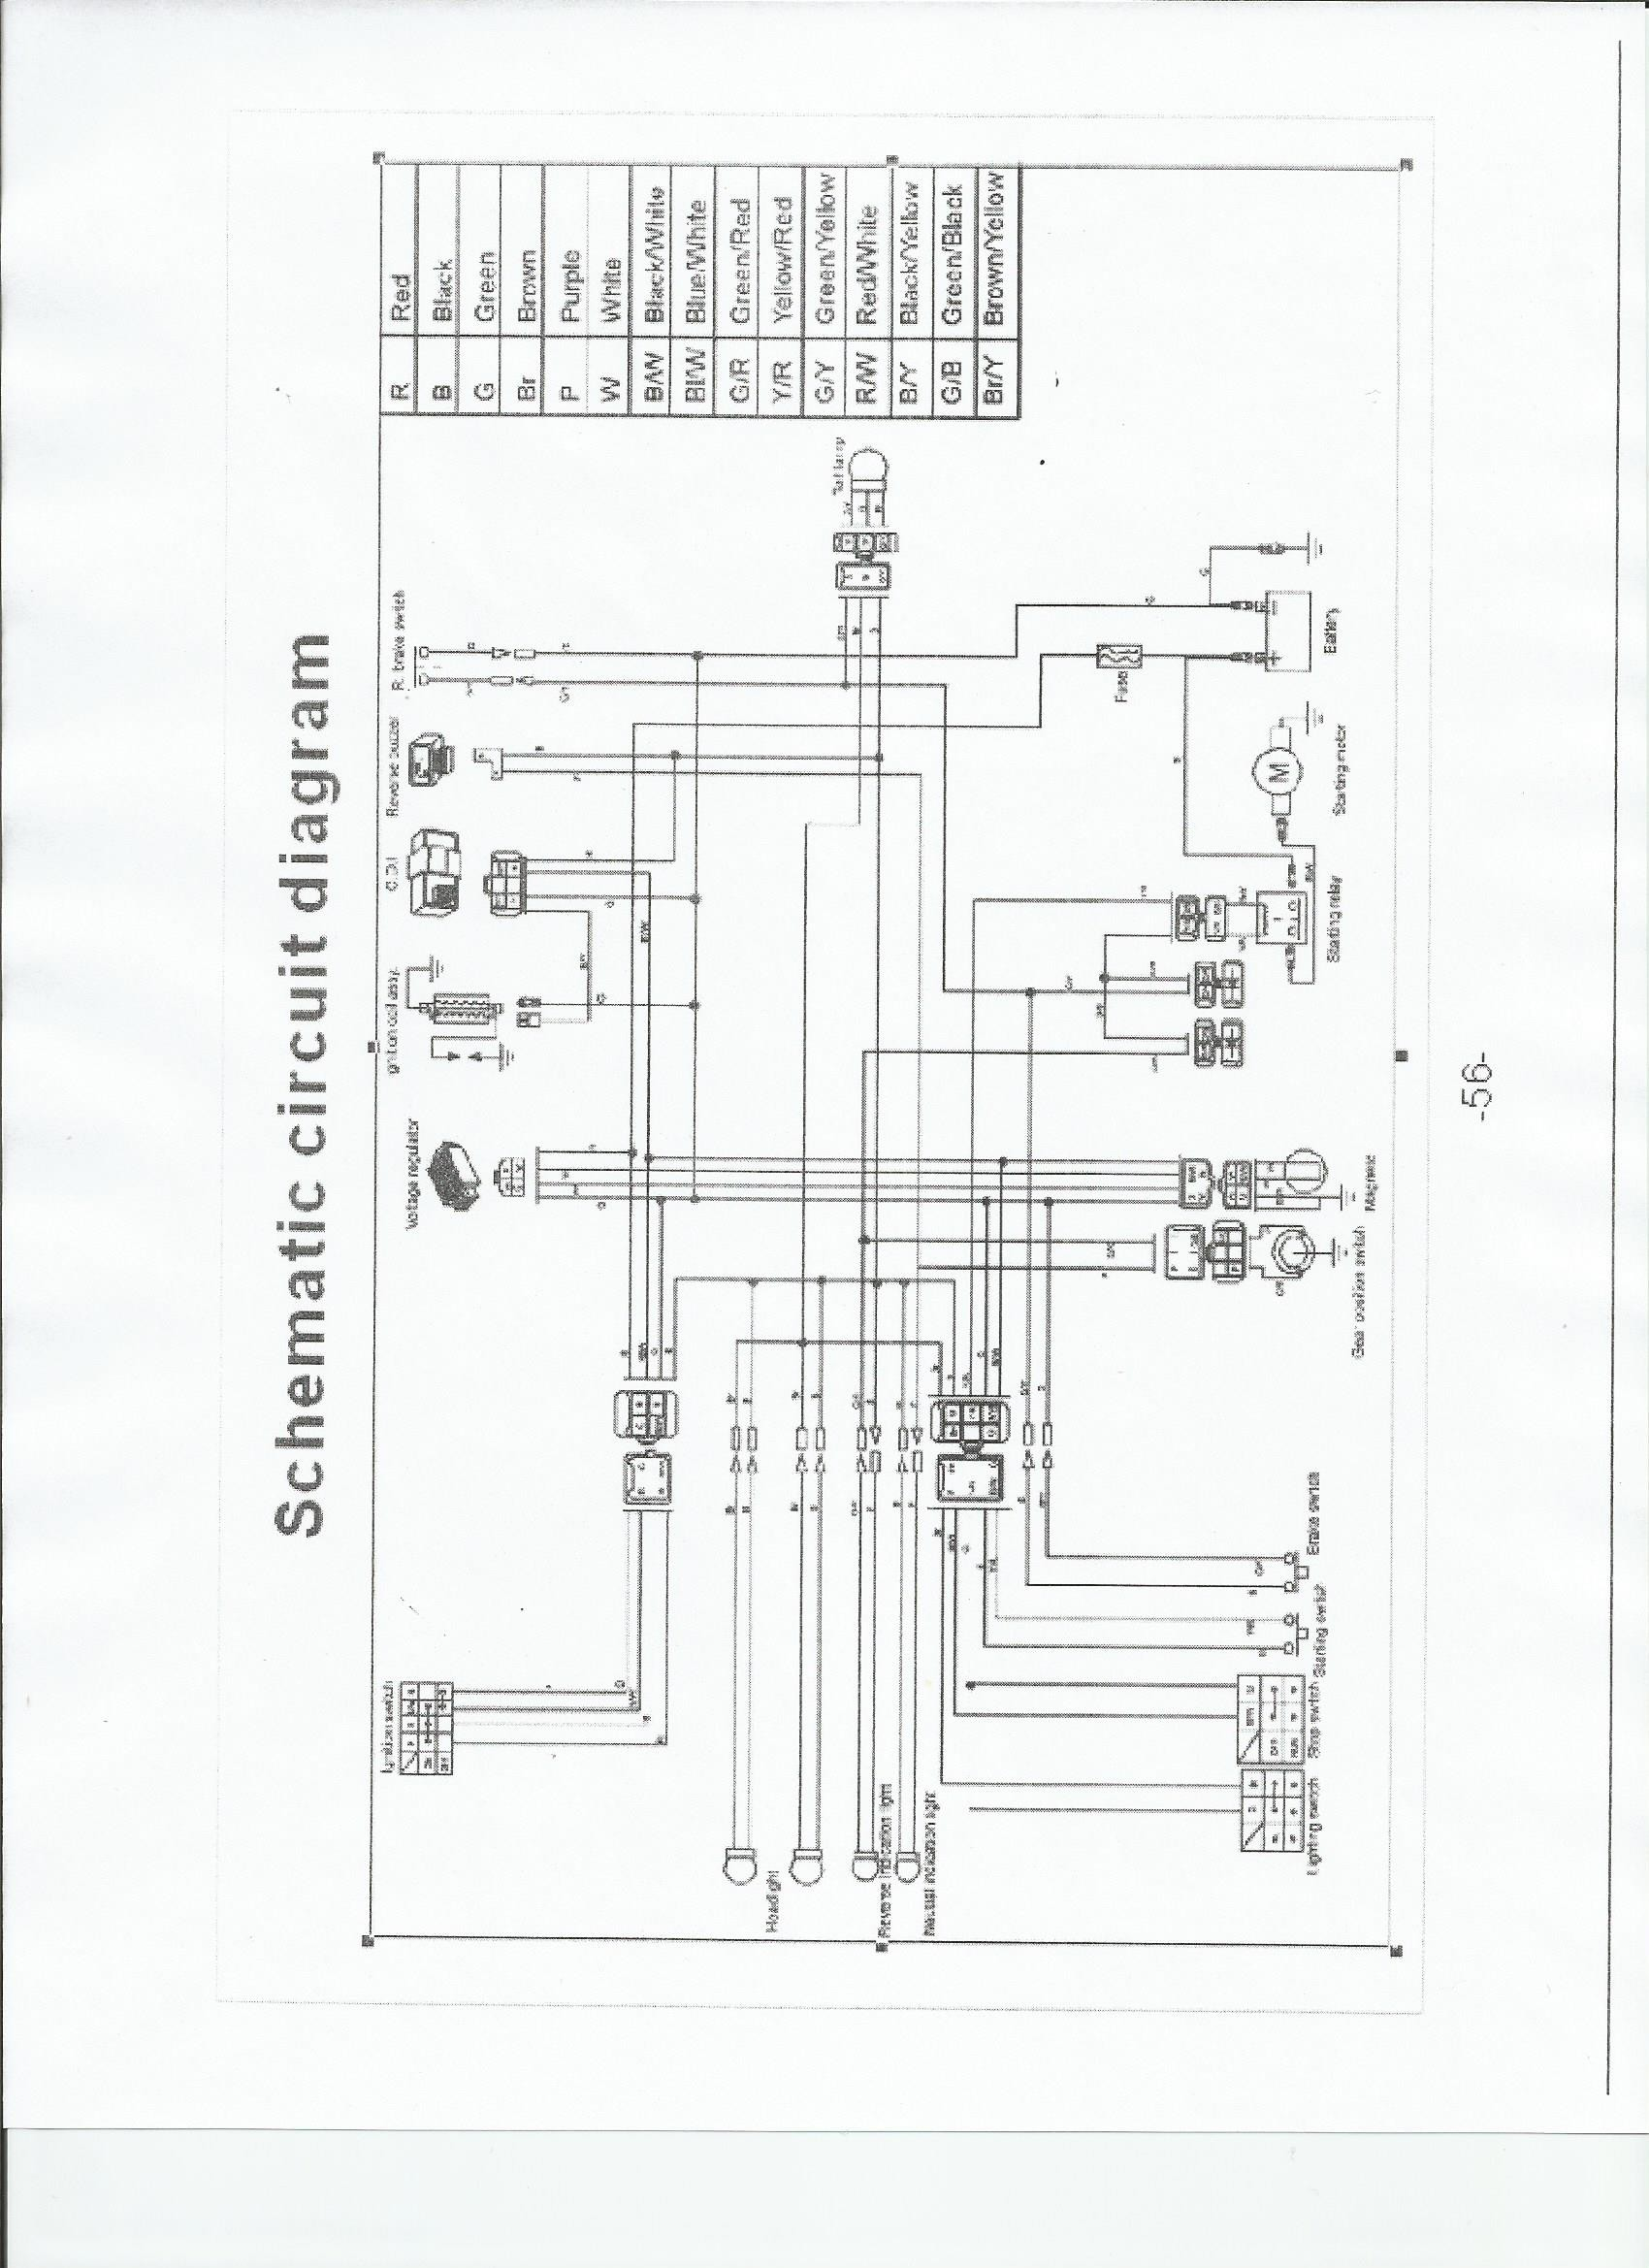 Tao Tao 250 Atv Wiring Diagram Diagram Base Website Wiring Diagram -  FREEBODYDIAGRAM.EKLIPSEDESIGN.IT